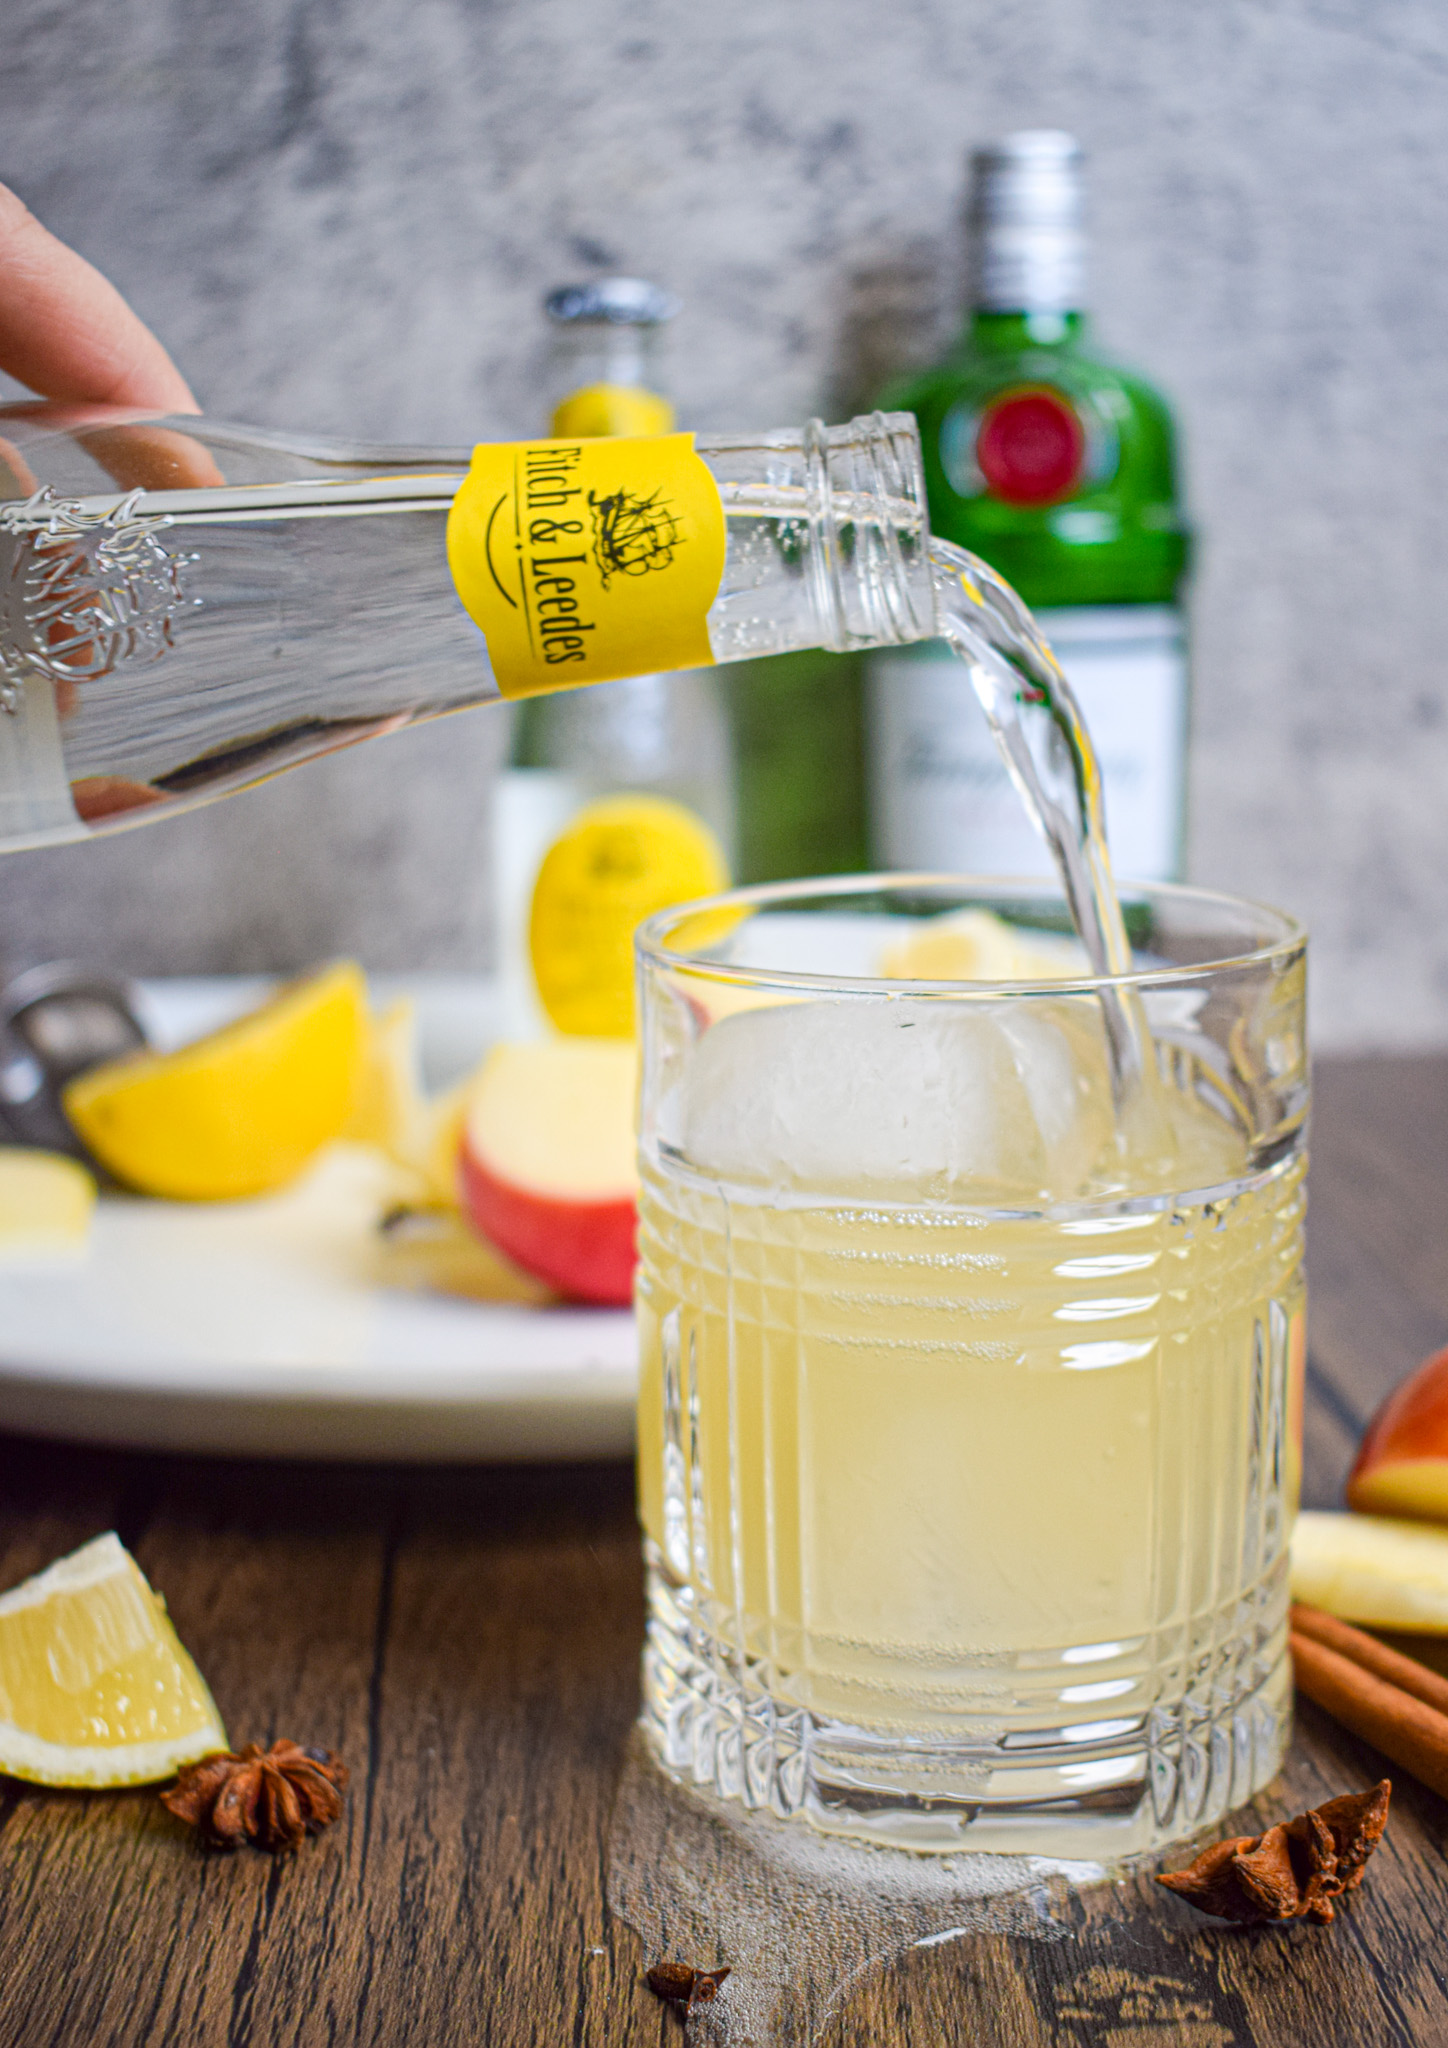 fitch & leedes premium indian tonic fall cocktail with gin